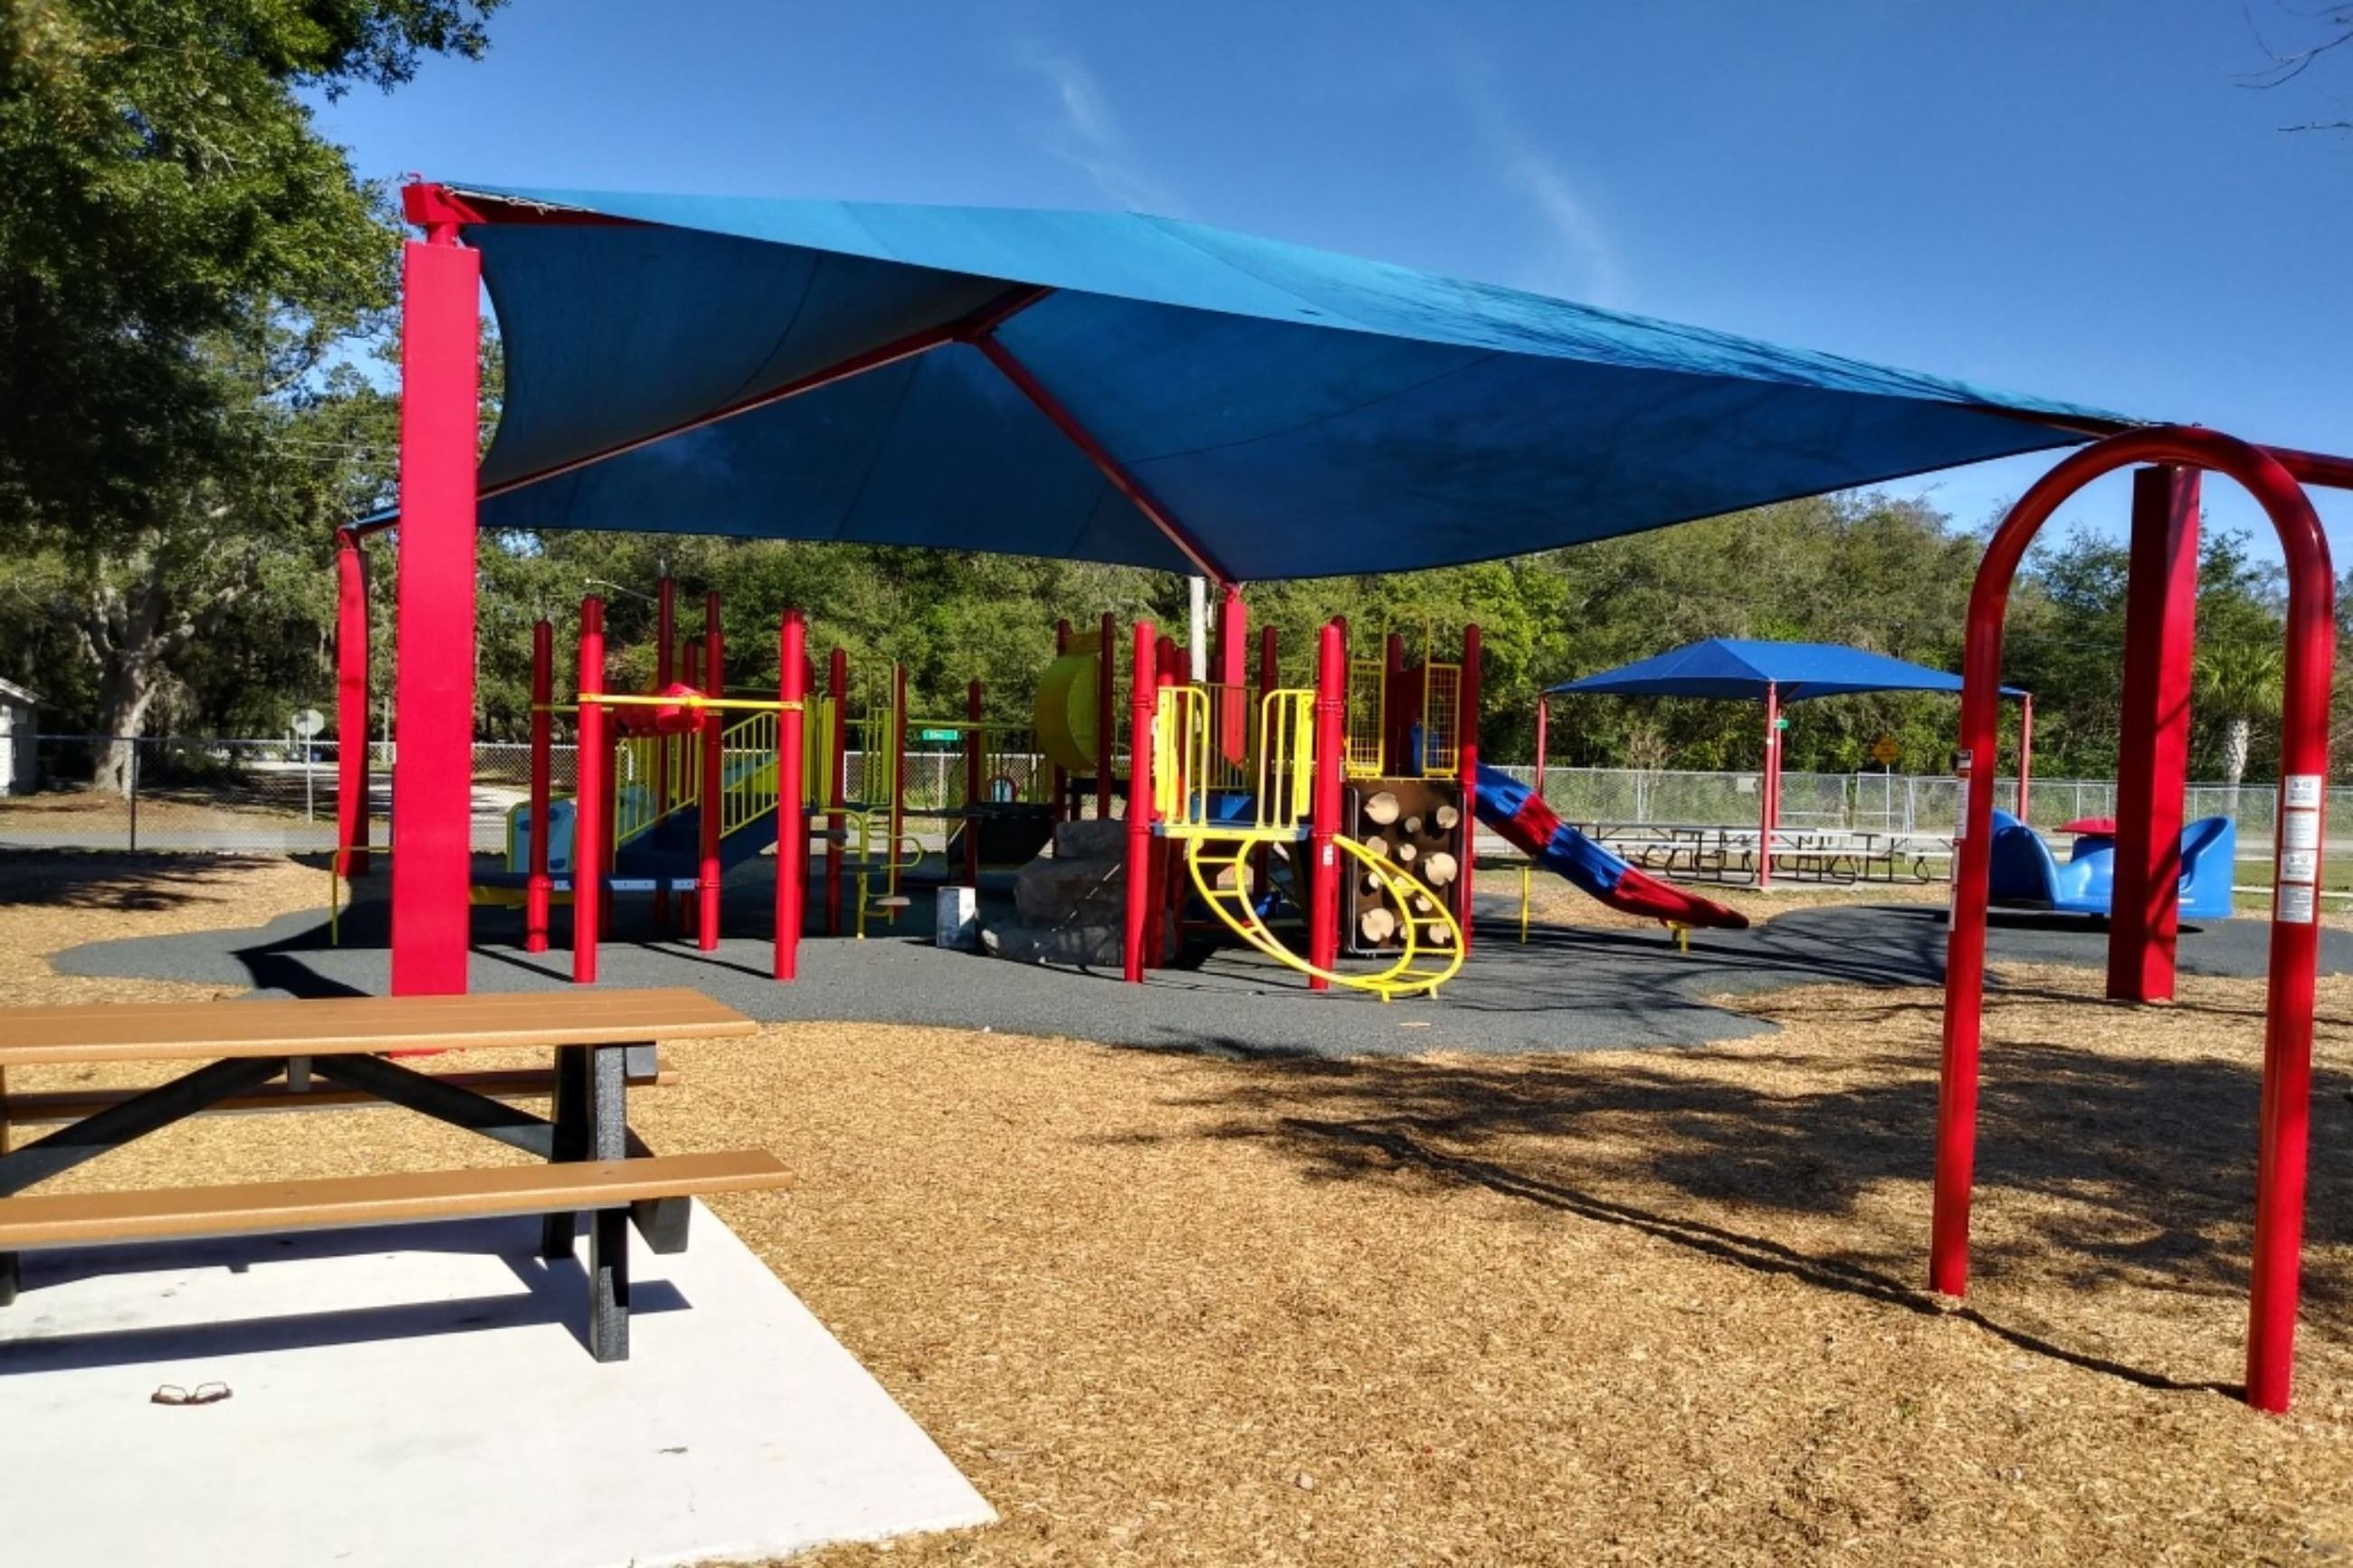 MLK, Jr Park playground